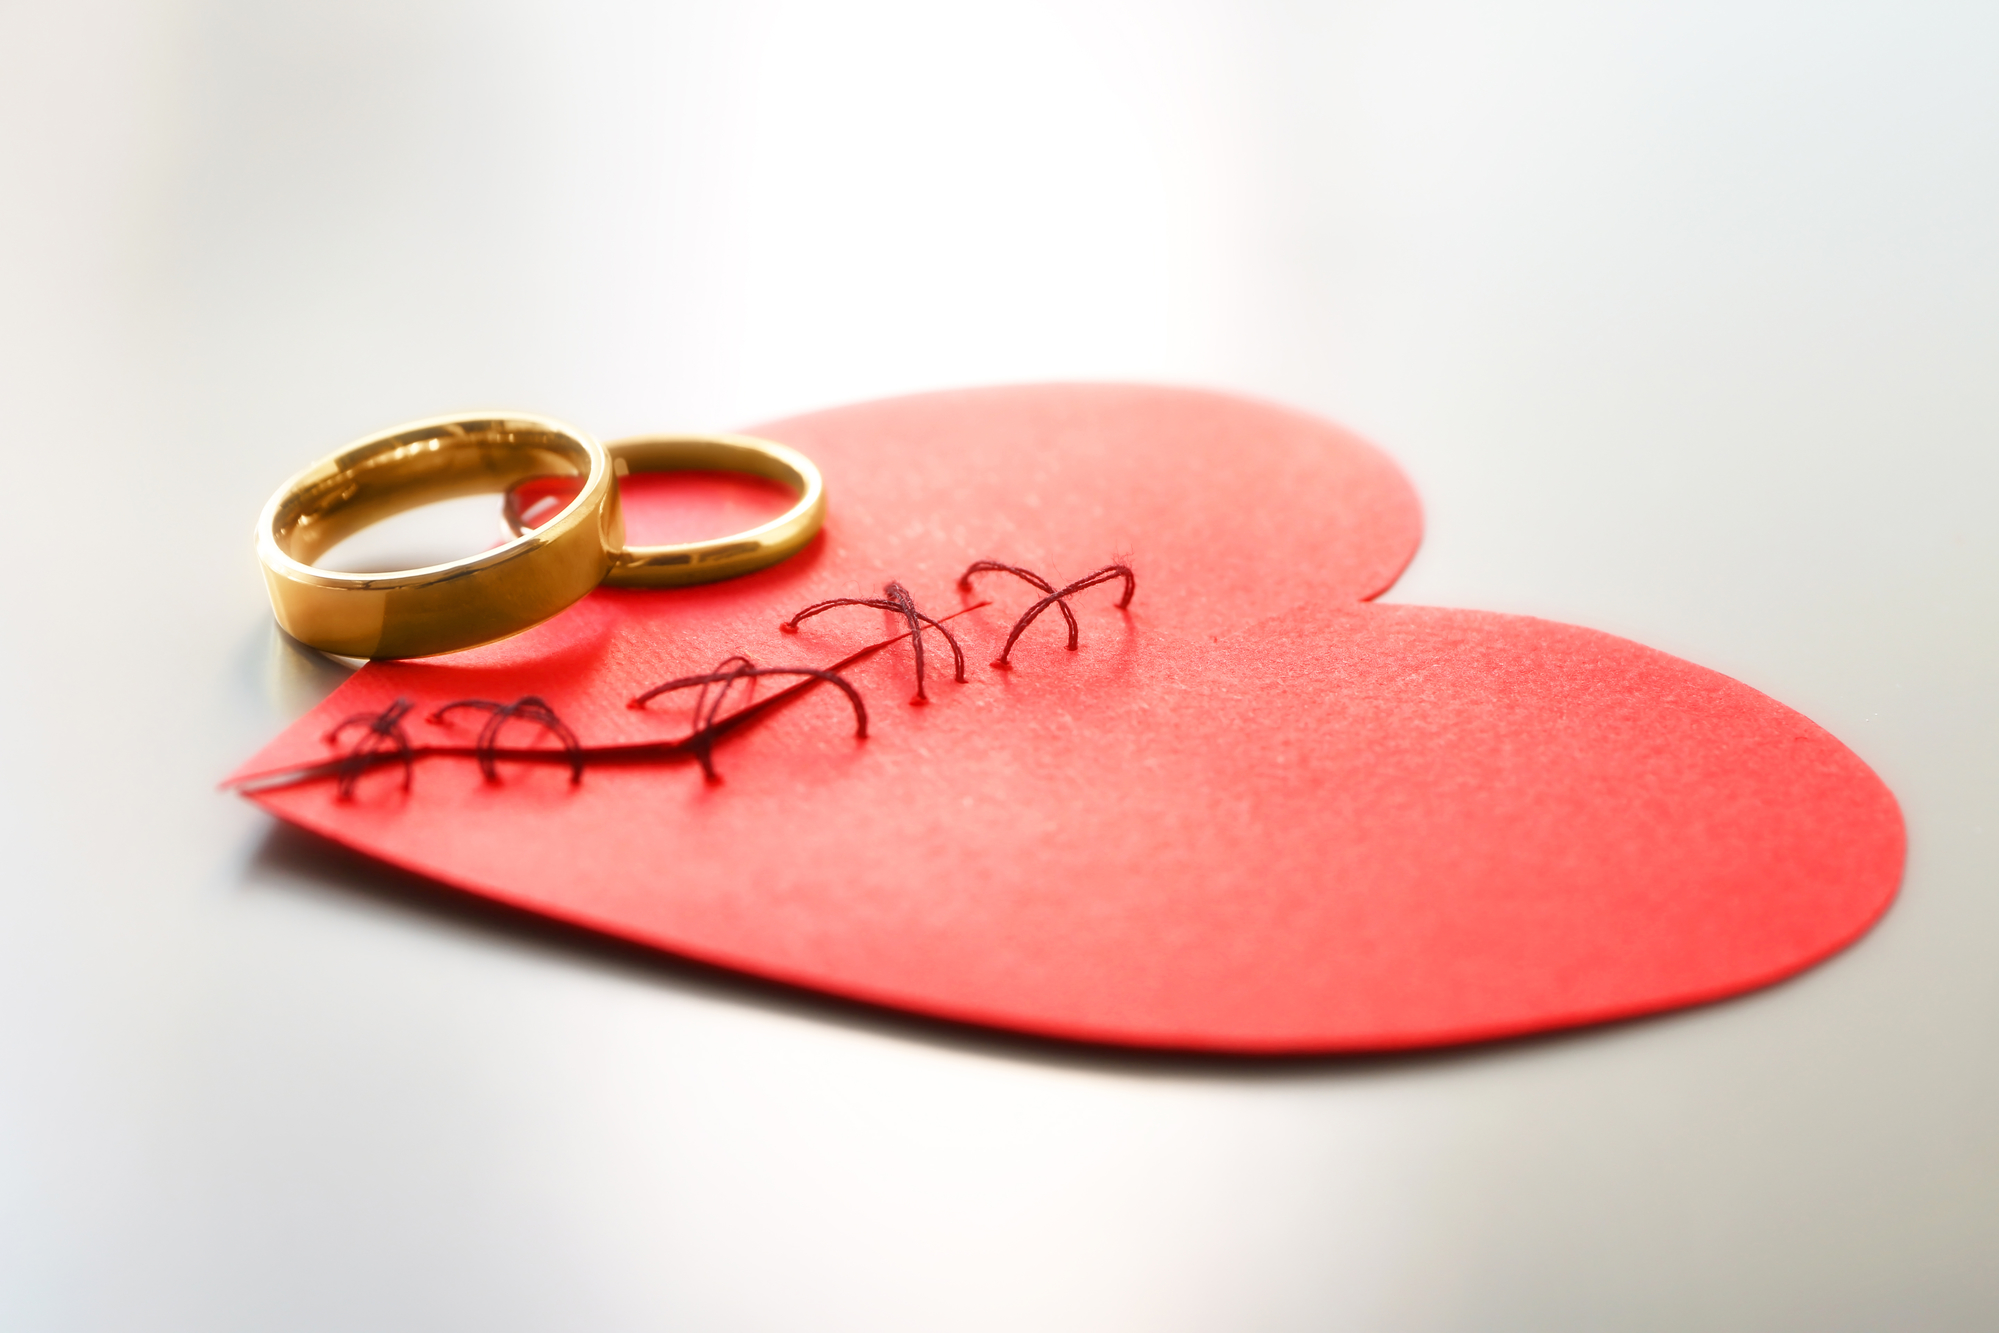 Paper heart cut in half and sewn back together with wedding rings on light background. Relationship problems